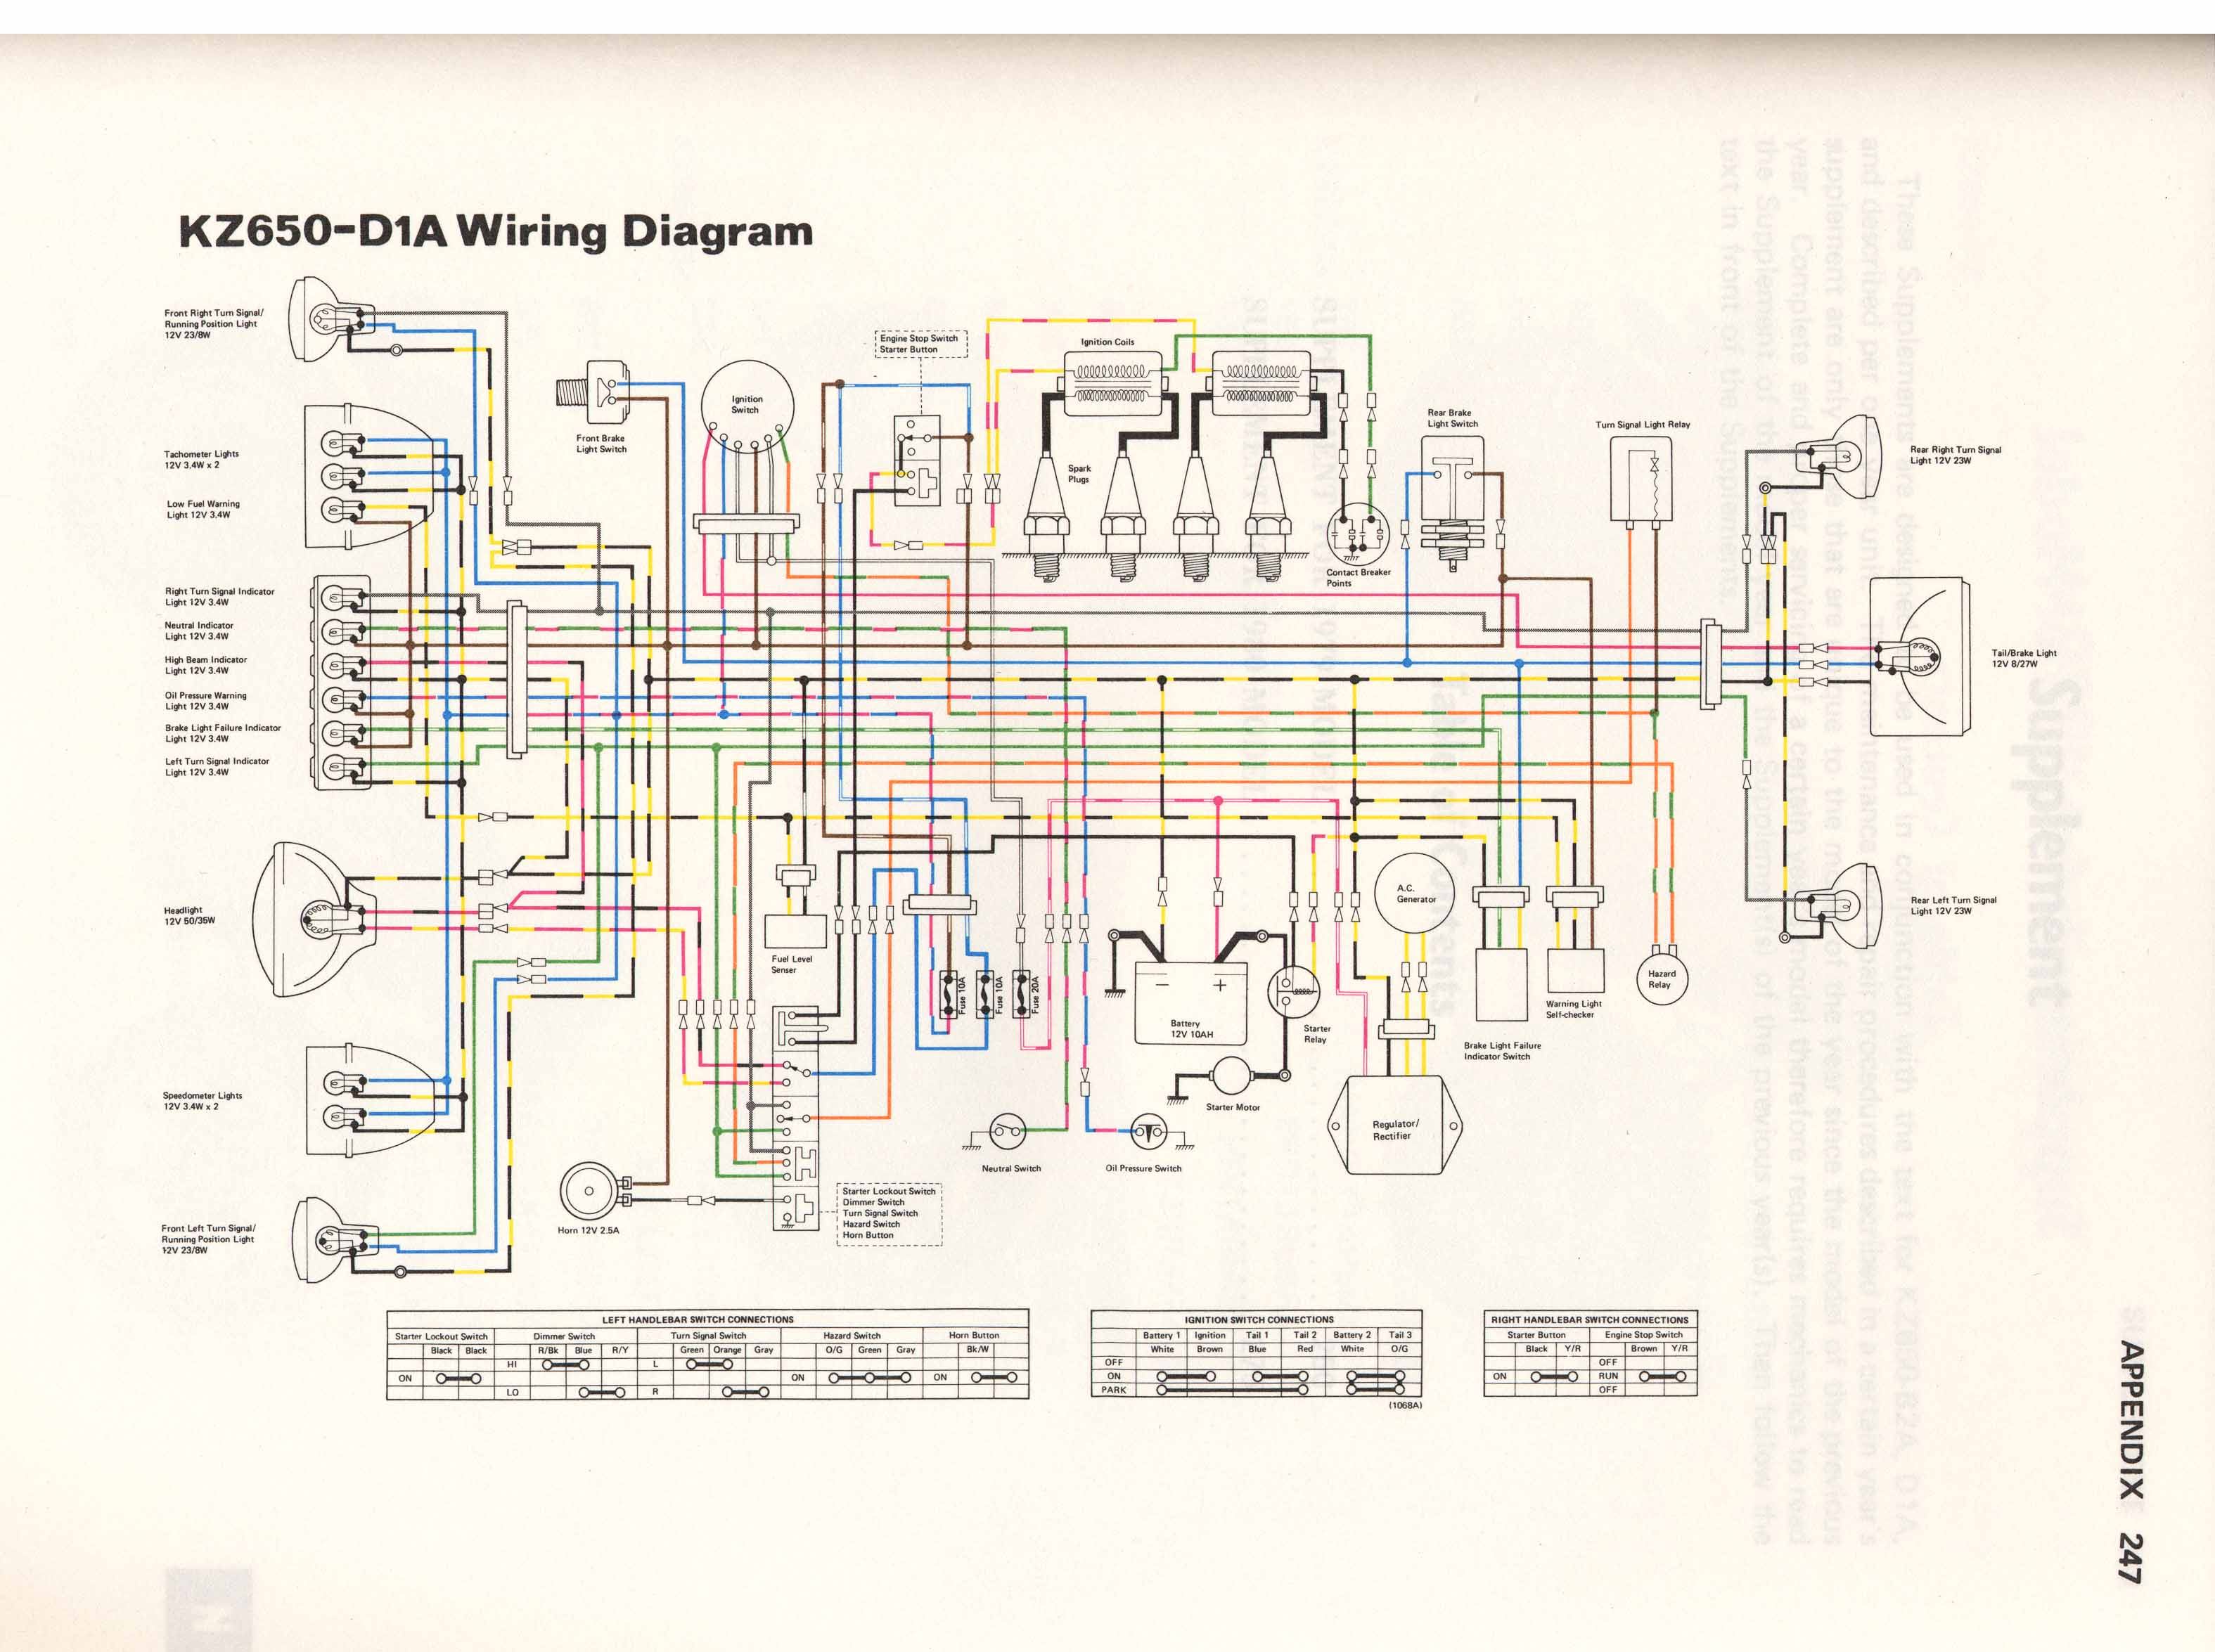 d2 wiring diagram kz650 info wiring diagrams by model